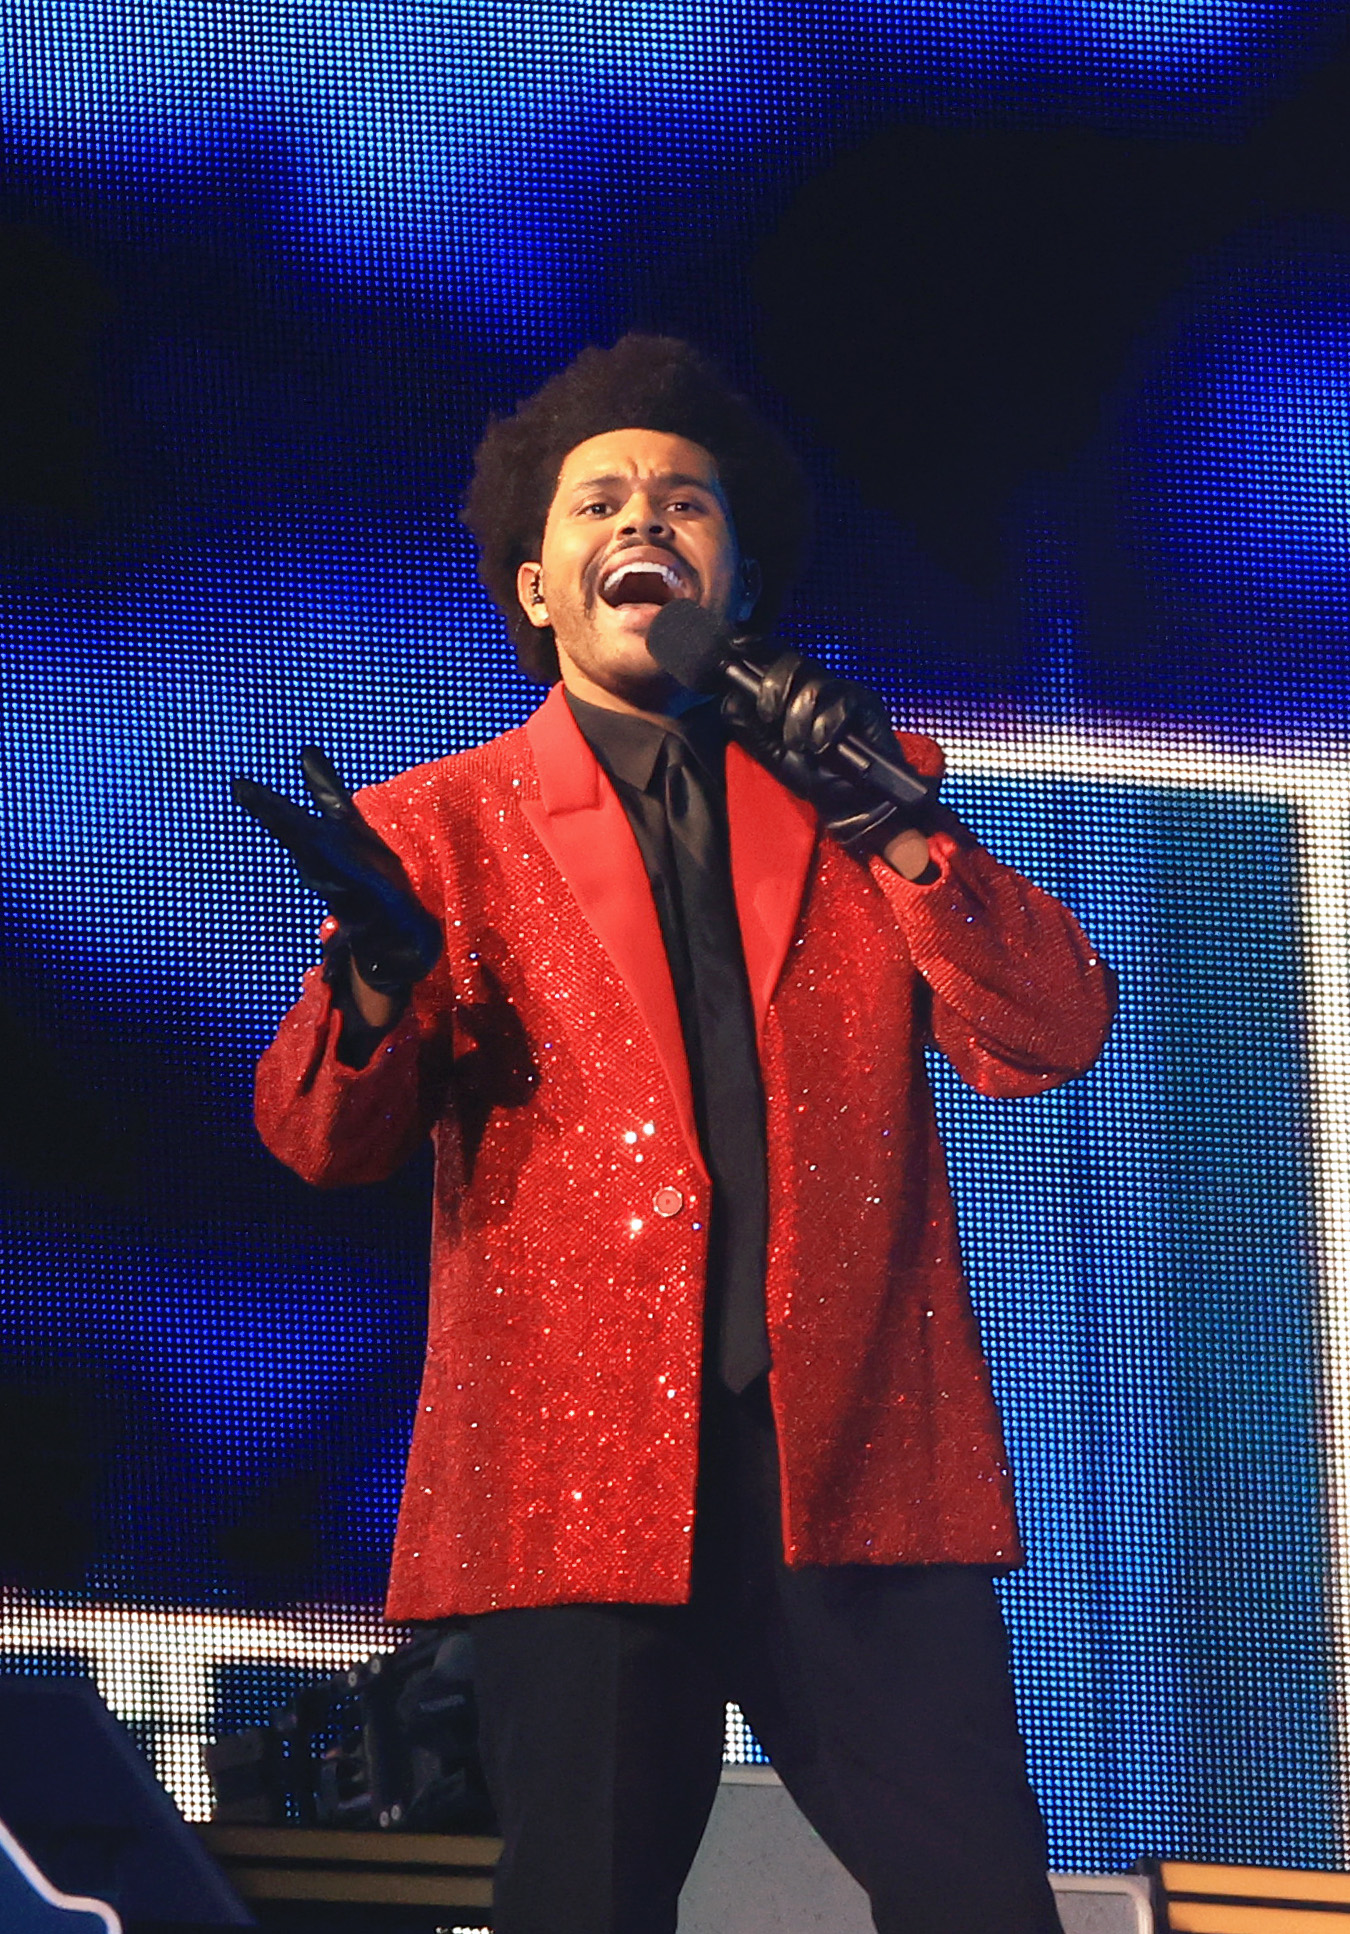 The Weeknd performs the 2021 Super Bowl halftime show